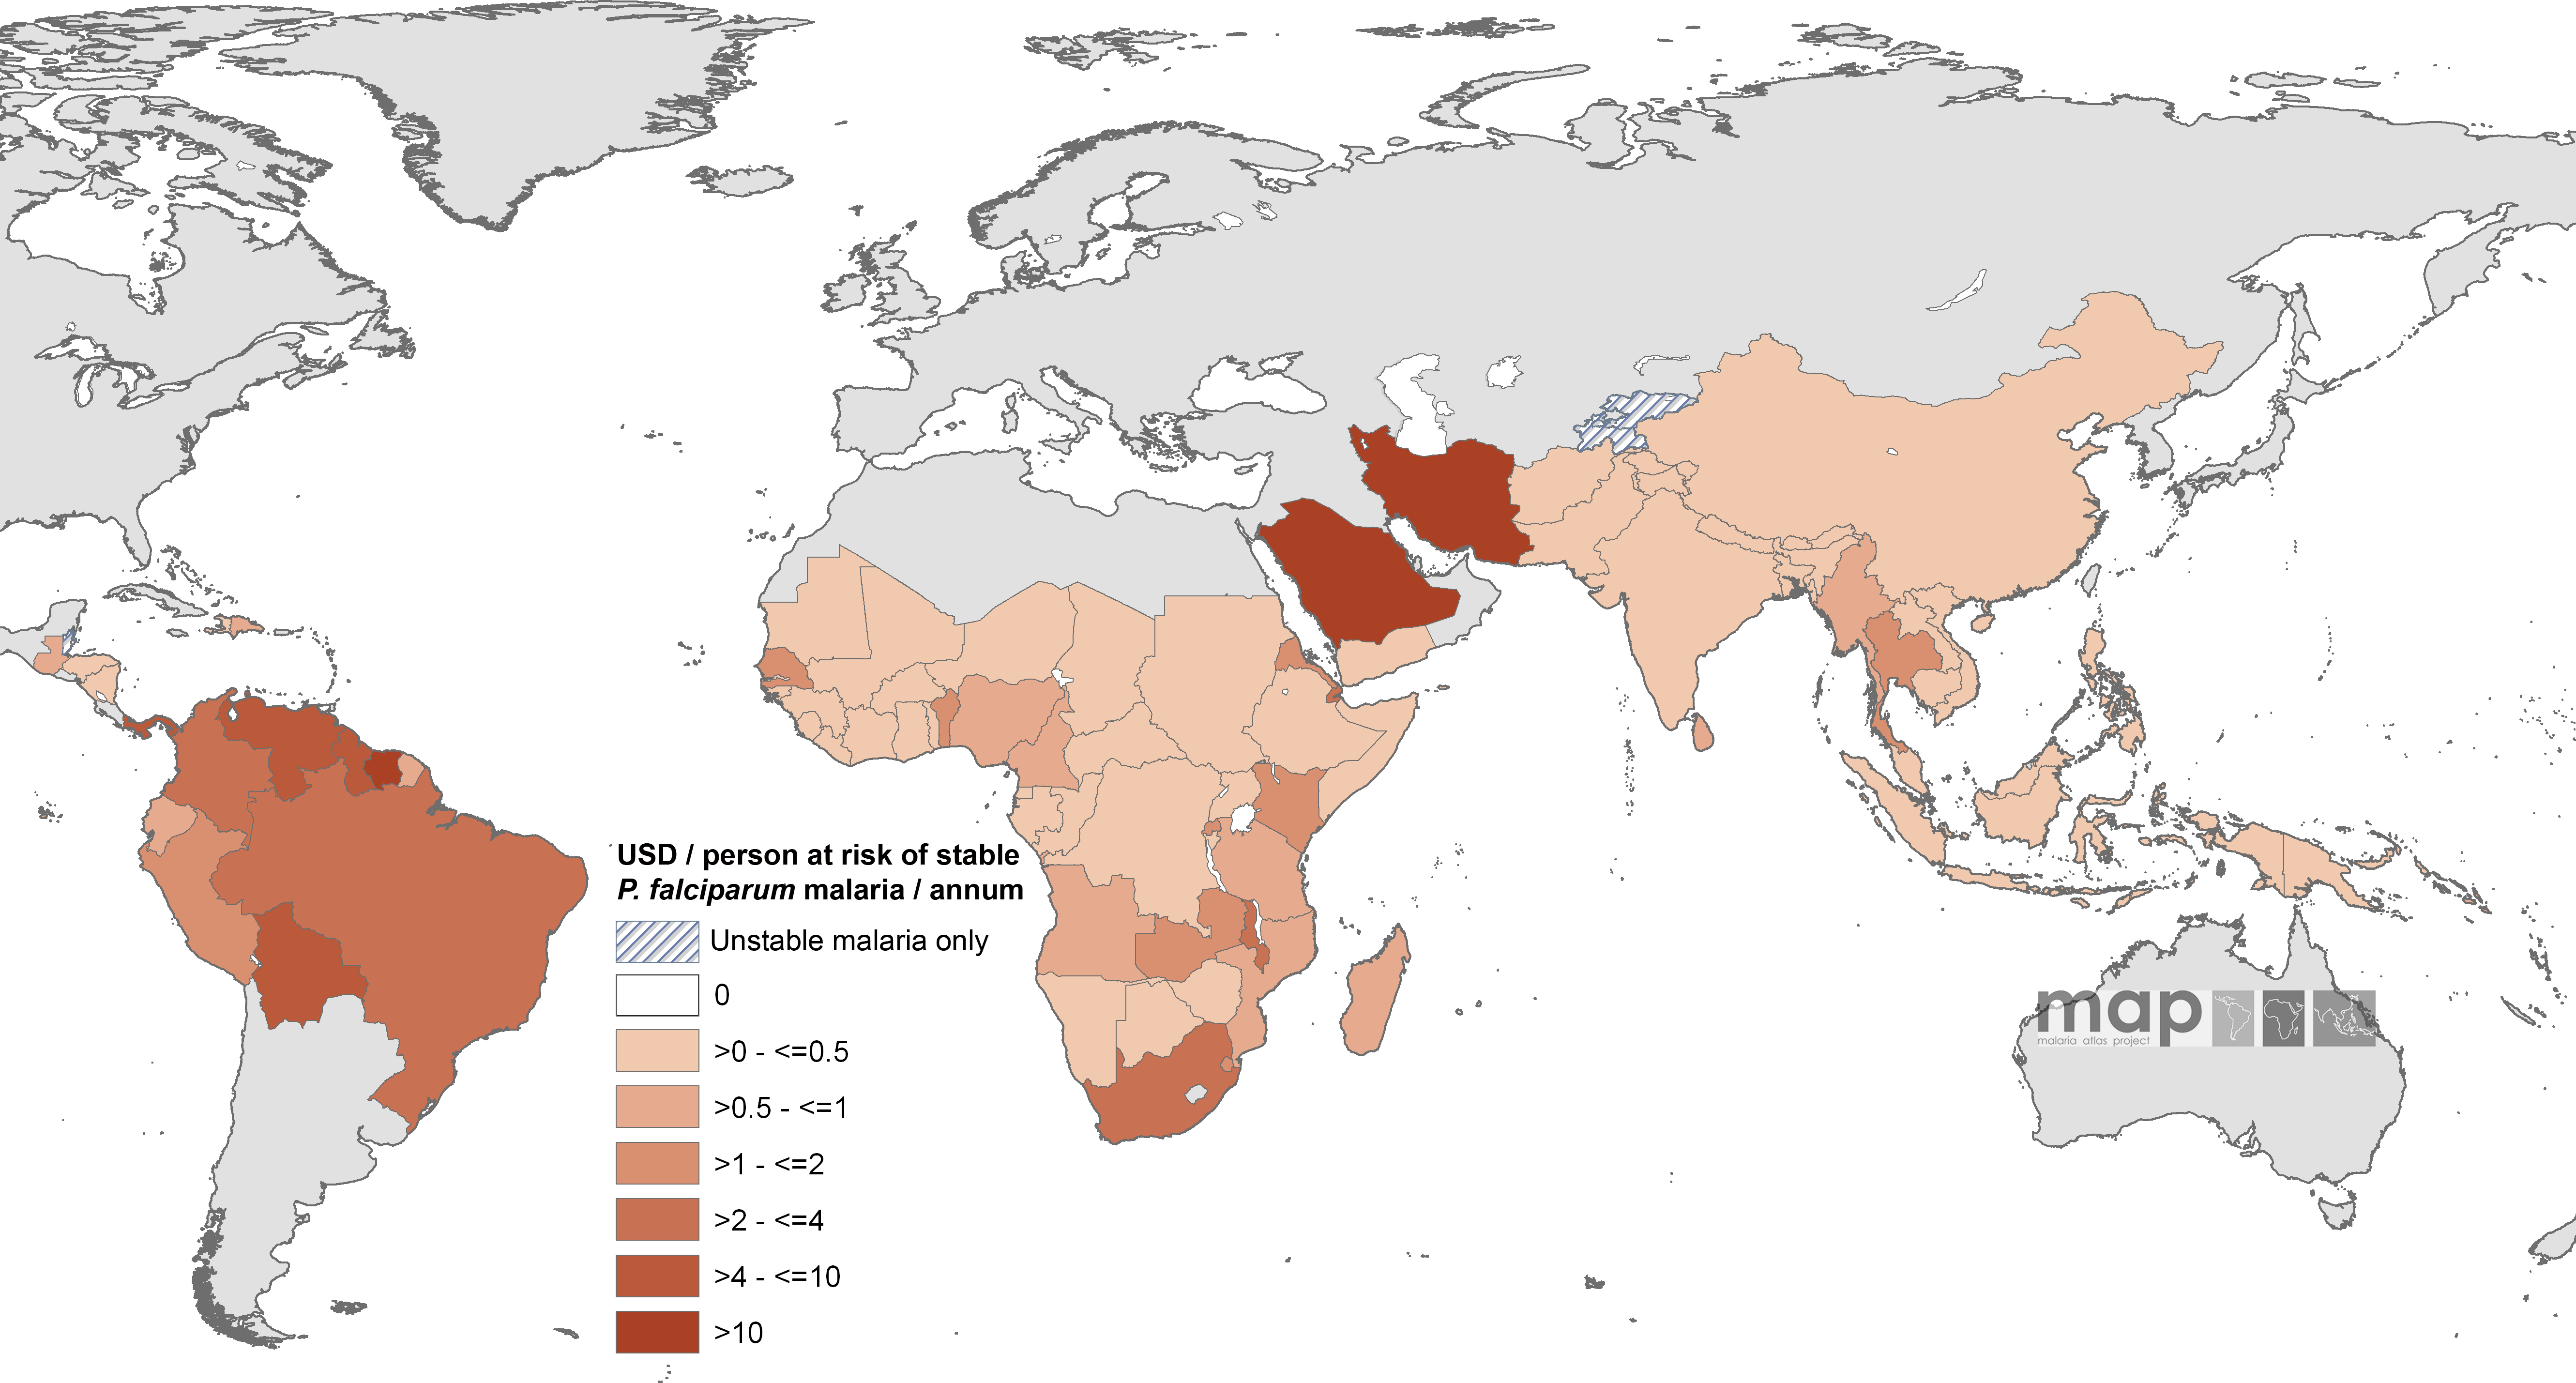 Mean Approved Non-GFATM Funding for 87 <i>Pf</i>MECs Expressed as US Dollars (USD) Per Capita at Stable P. falciparum Risk Per Annum